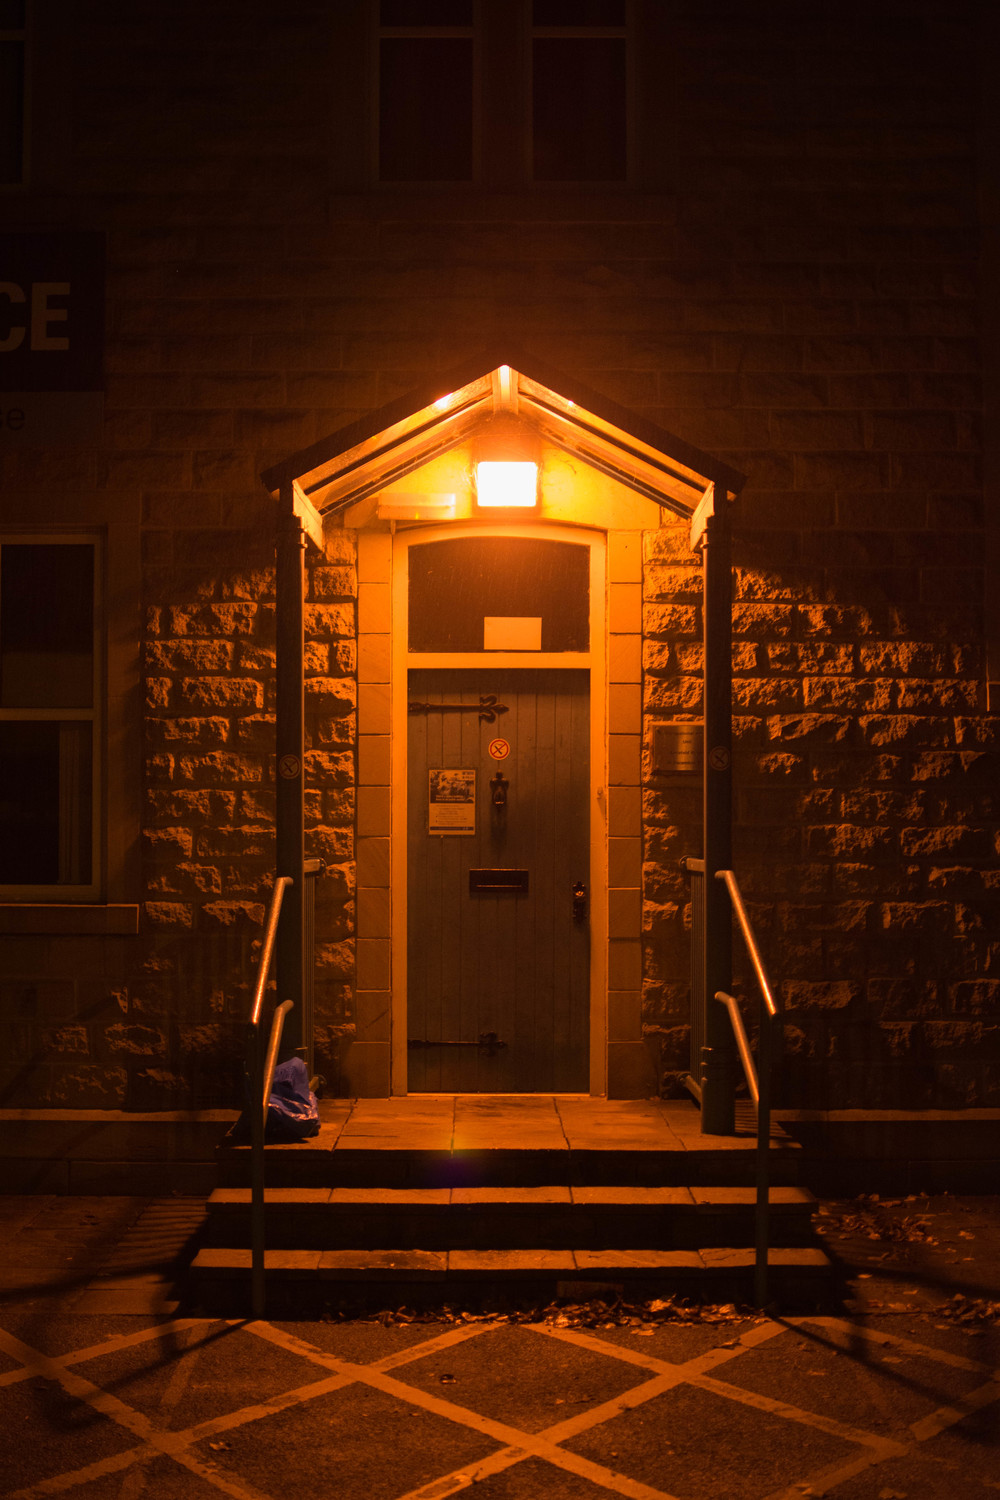 ISO 800 * 1/30s * 35mm * f/1.8 A closed police station, lit by a single external lamp.